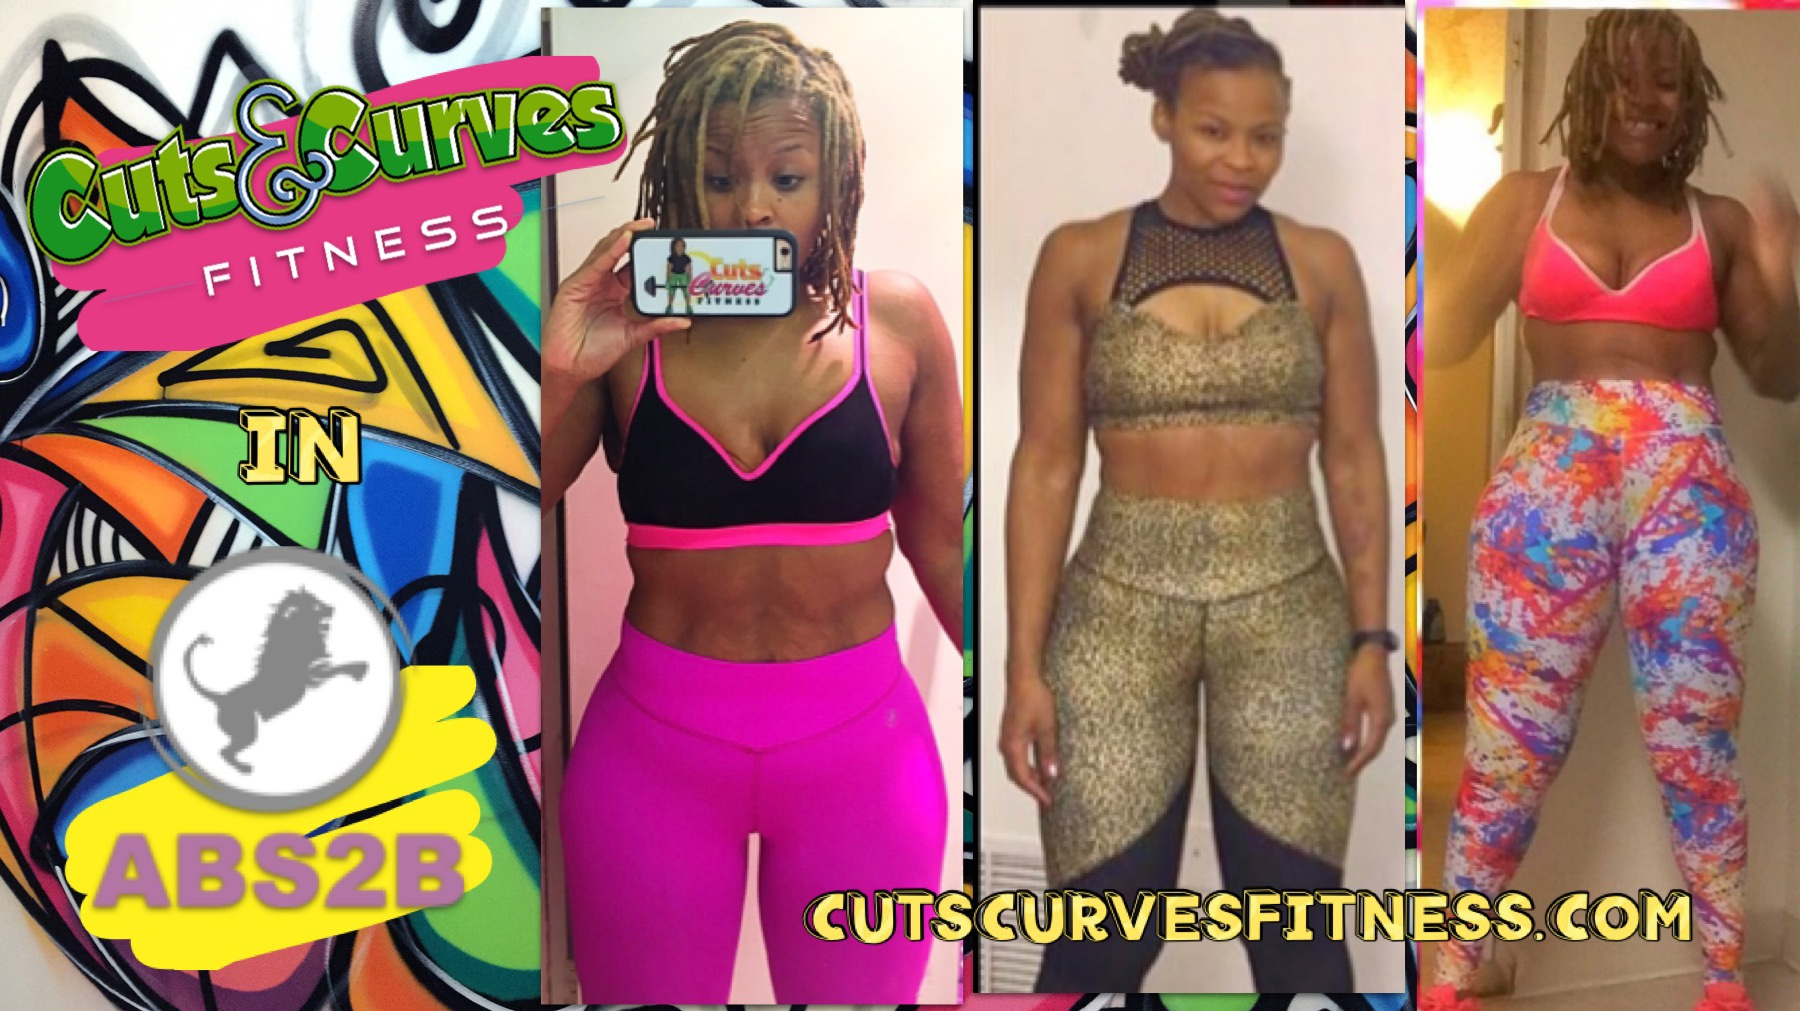 Cuts & Curves Fitness in Abs2b Fitness Apparel